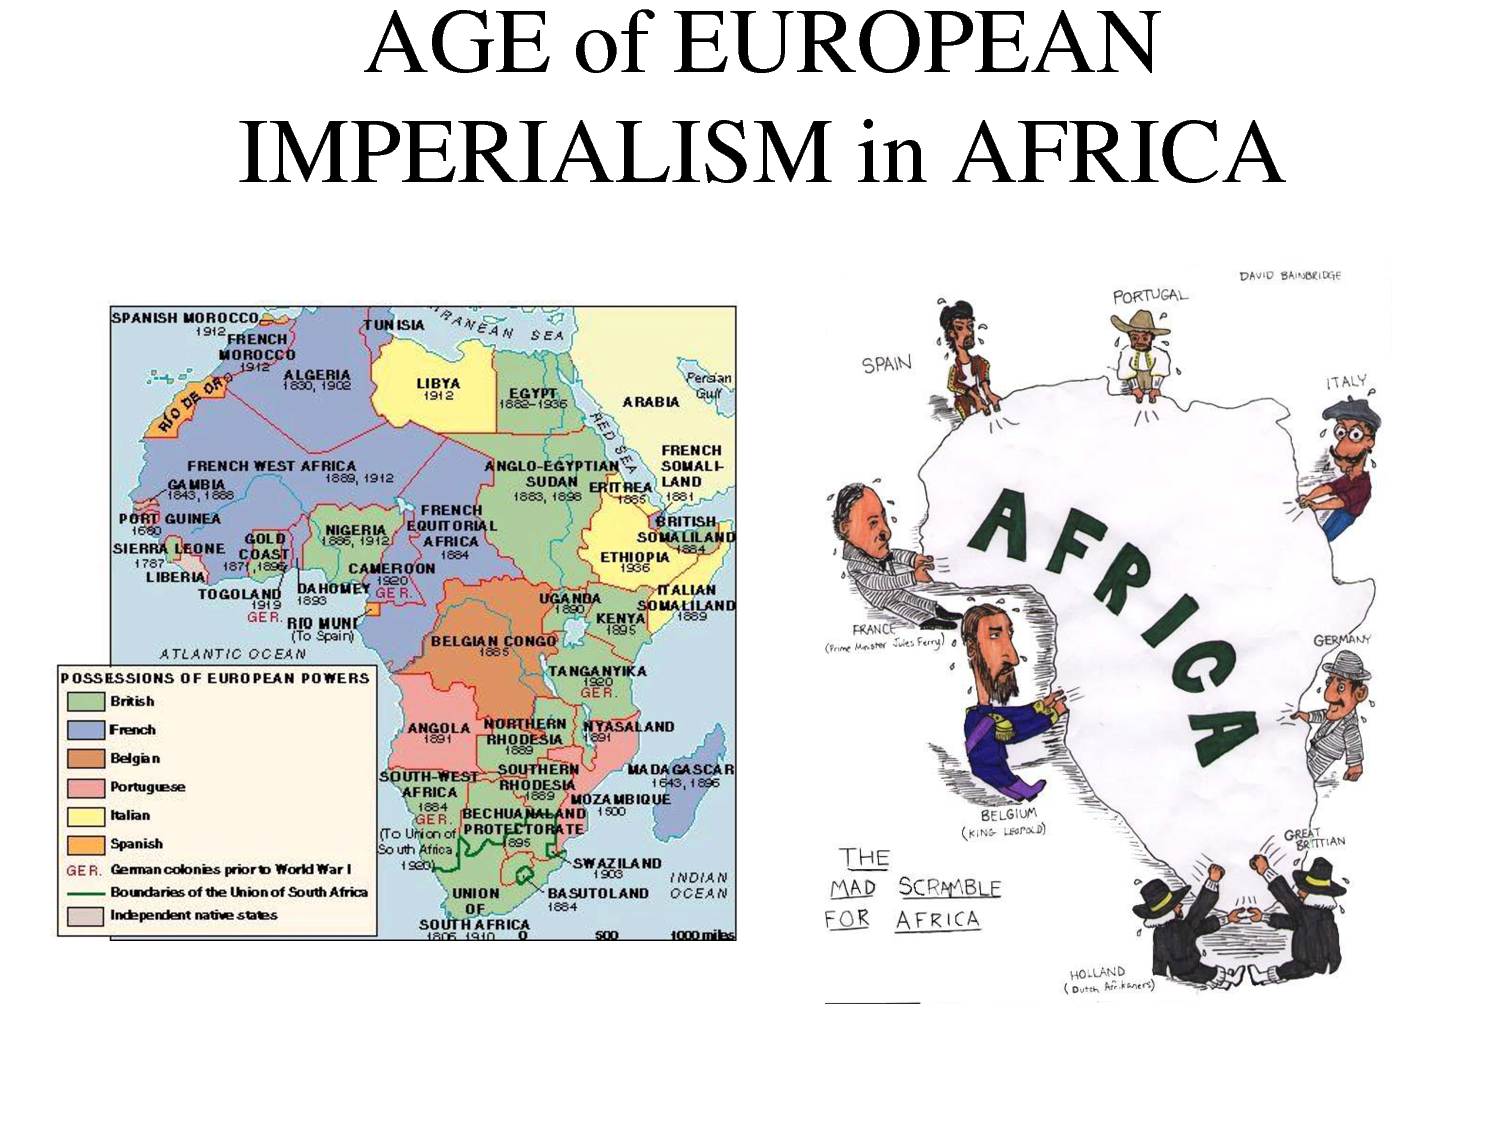 Unit 5: Imperialism – Mr. Wiggin's History Cl Imperialism In Africa Map on libya in africa map, crime in africa map, ethnic conflict in africa map, hiv aids africa map, israel in africa map, genocide in africa map, africa before imperialism map, decolonization in africa map, agricultural revolution in africa map, bodies of water in africa map, imperialism africa map outline, christianity in africa map, terrorism in africa map, ebola in africa map, africa's natural resources map, africa during imperialism map, world in africa map, islam in africa map, different tribes in africa map, european imperialism africa map,